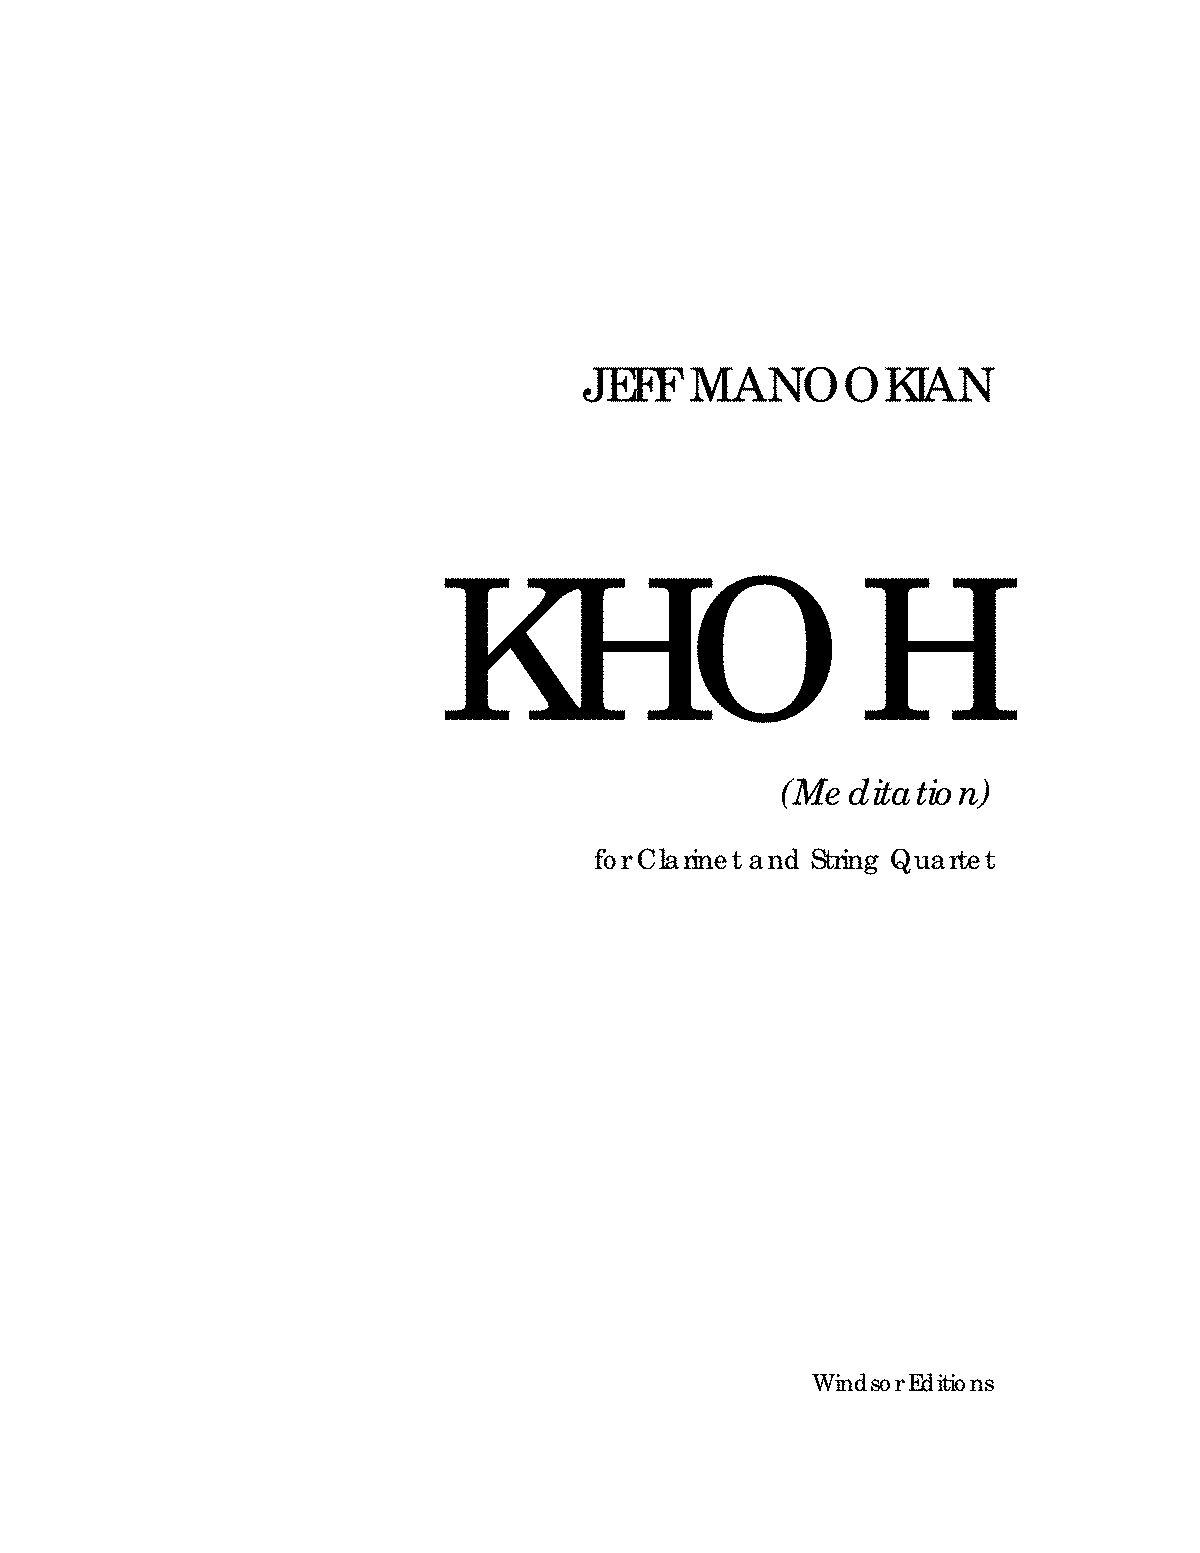 PMLP231372-SCORE & PARTS Clarinet and String Quartet version.pdf